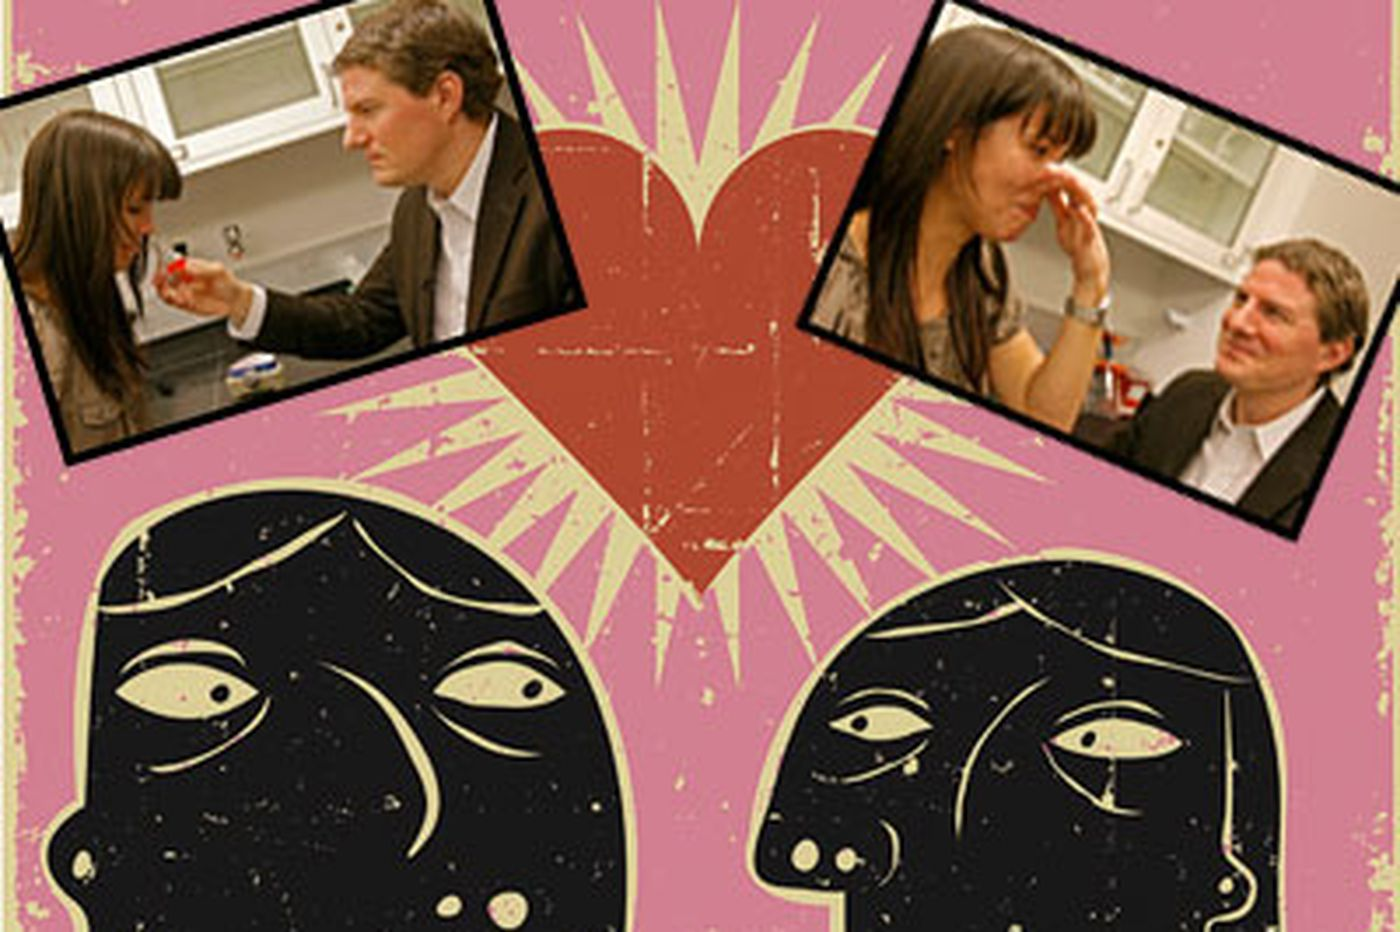 What love smells like: Scientist speaks on 'Nasal Attraction'